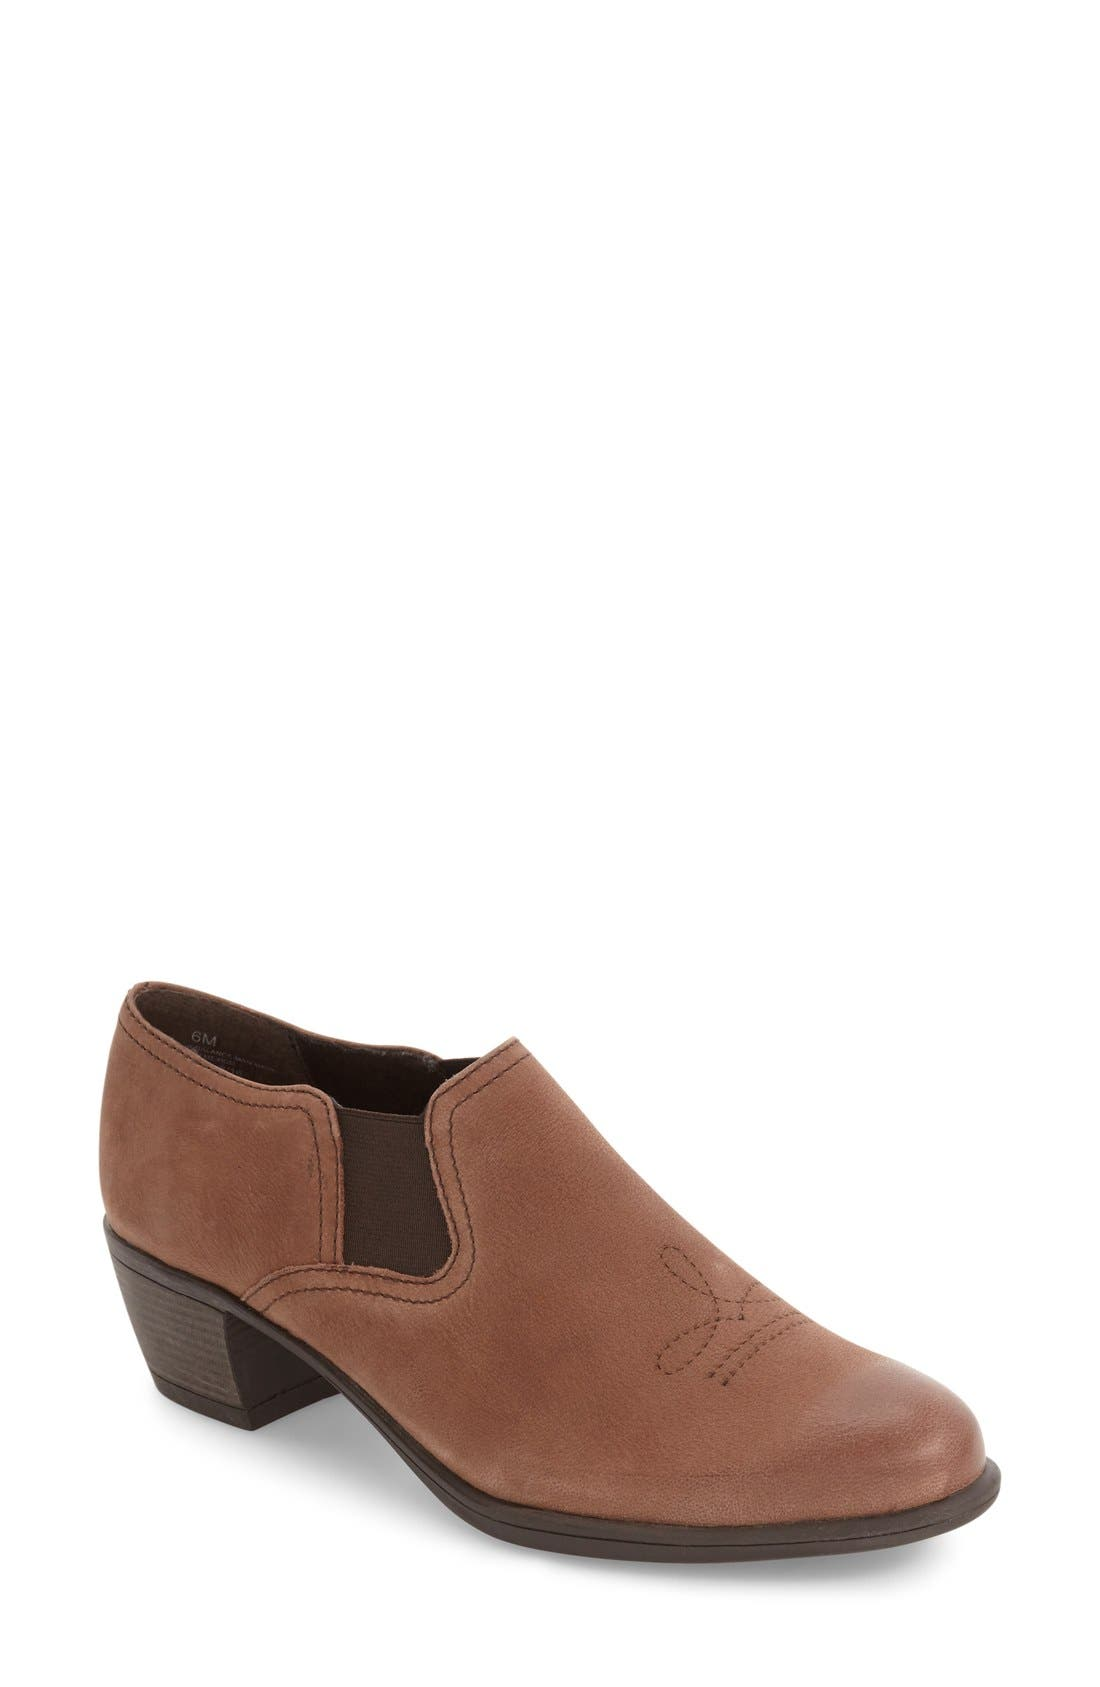 Alternate Image 1 Selected - Munro Silverton Water Resistant Ankle Bootie (Women)